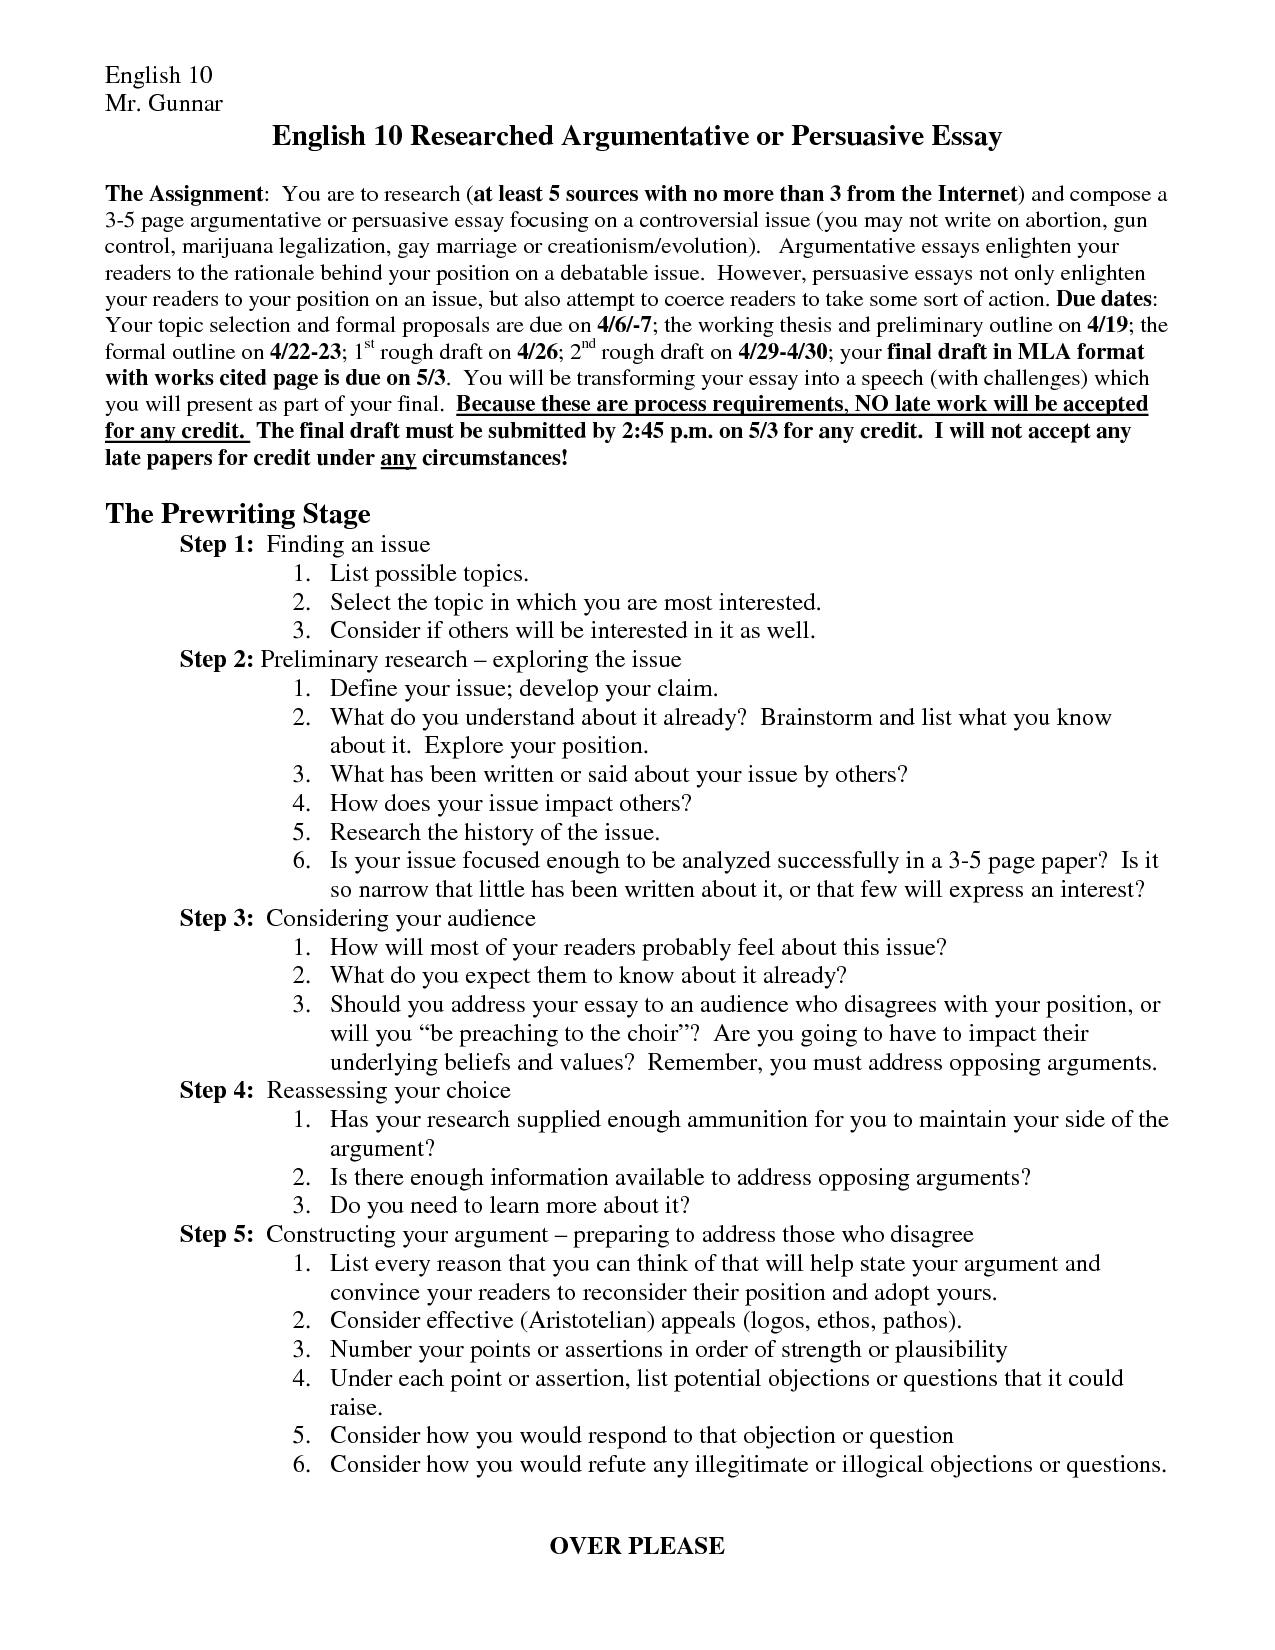 011 Persuasive Research Paper Topic Mla Format Argumentative Essay Outline 472291 Awful Topics College Writing Prompts For Middle Schoolers Full